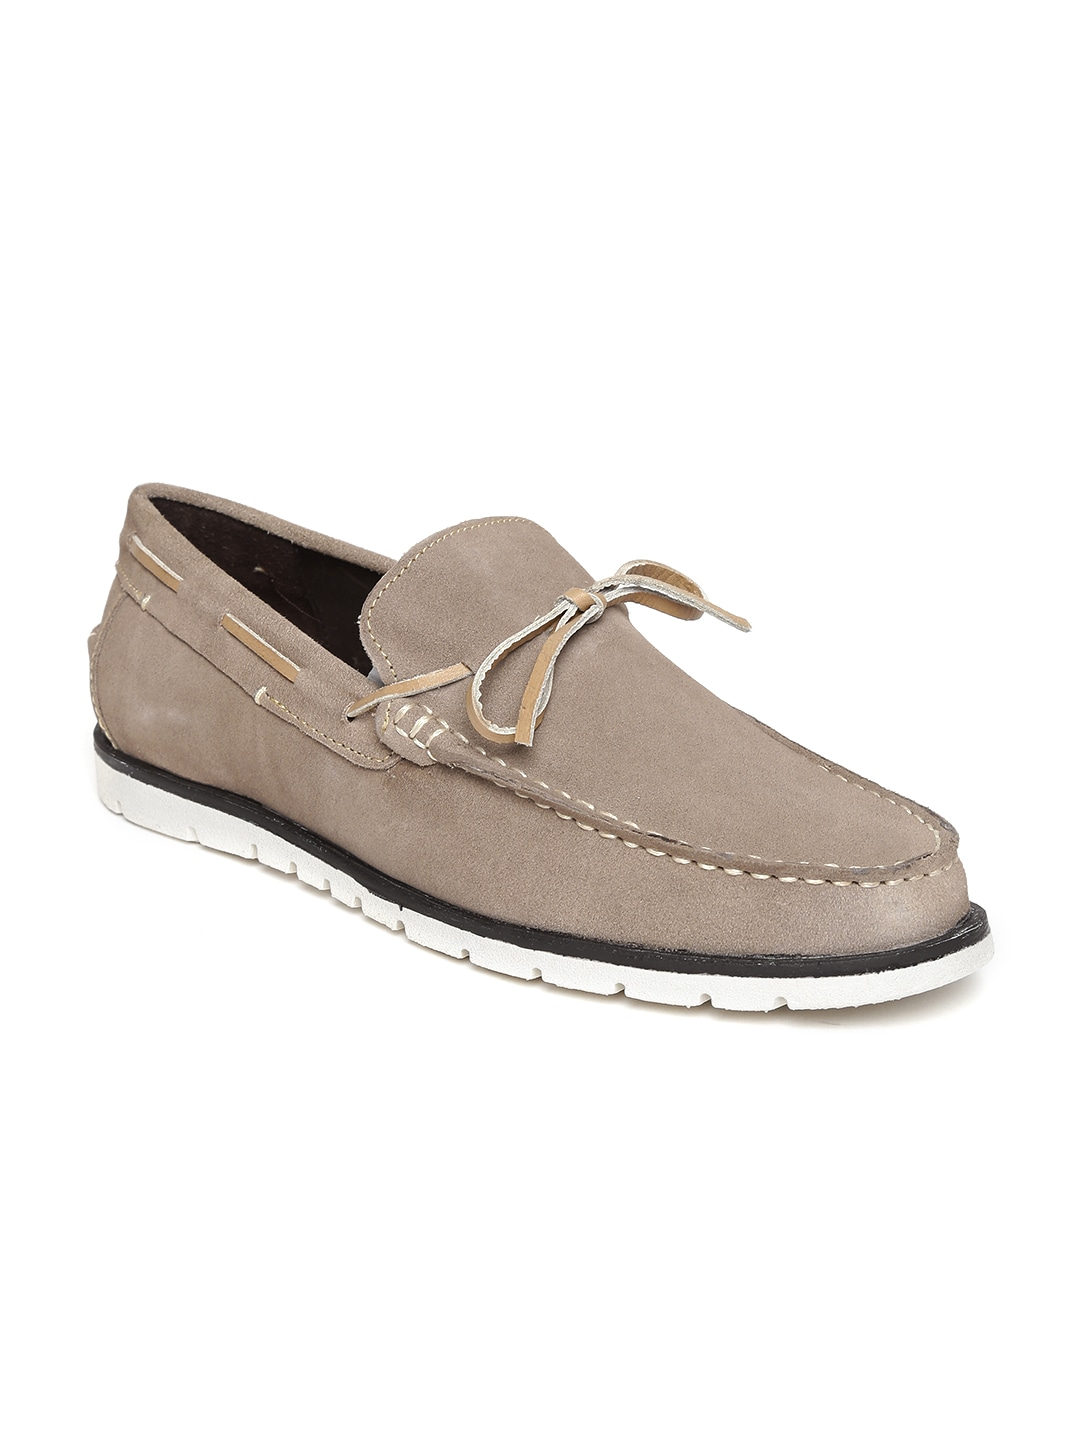 Search D Island Shoes Casual Oxford Loafers Genuine Leather Brown